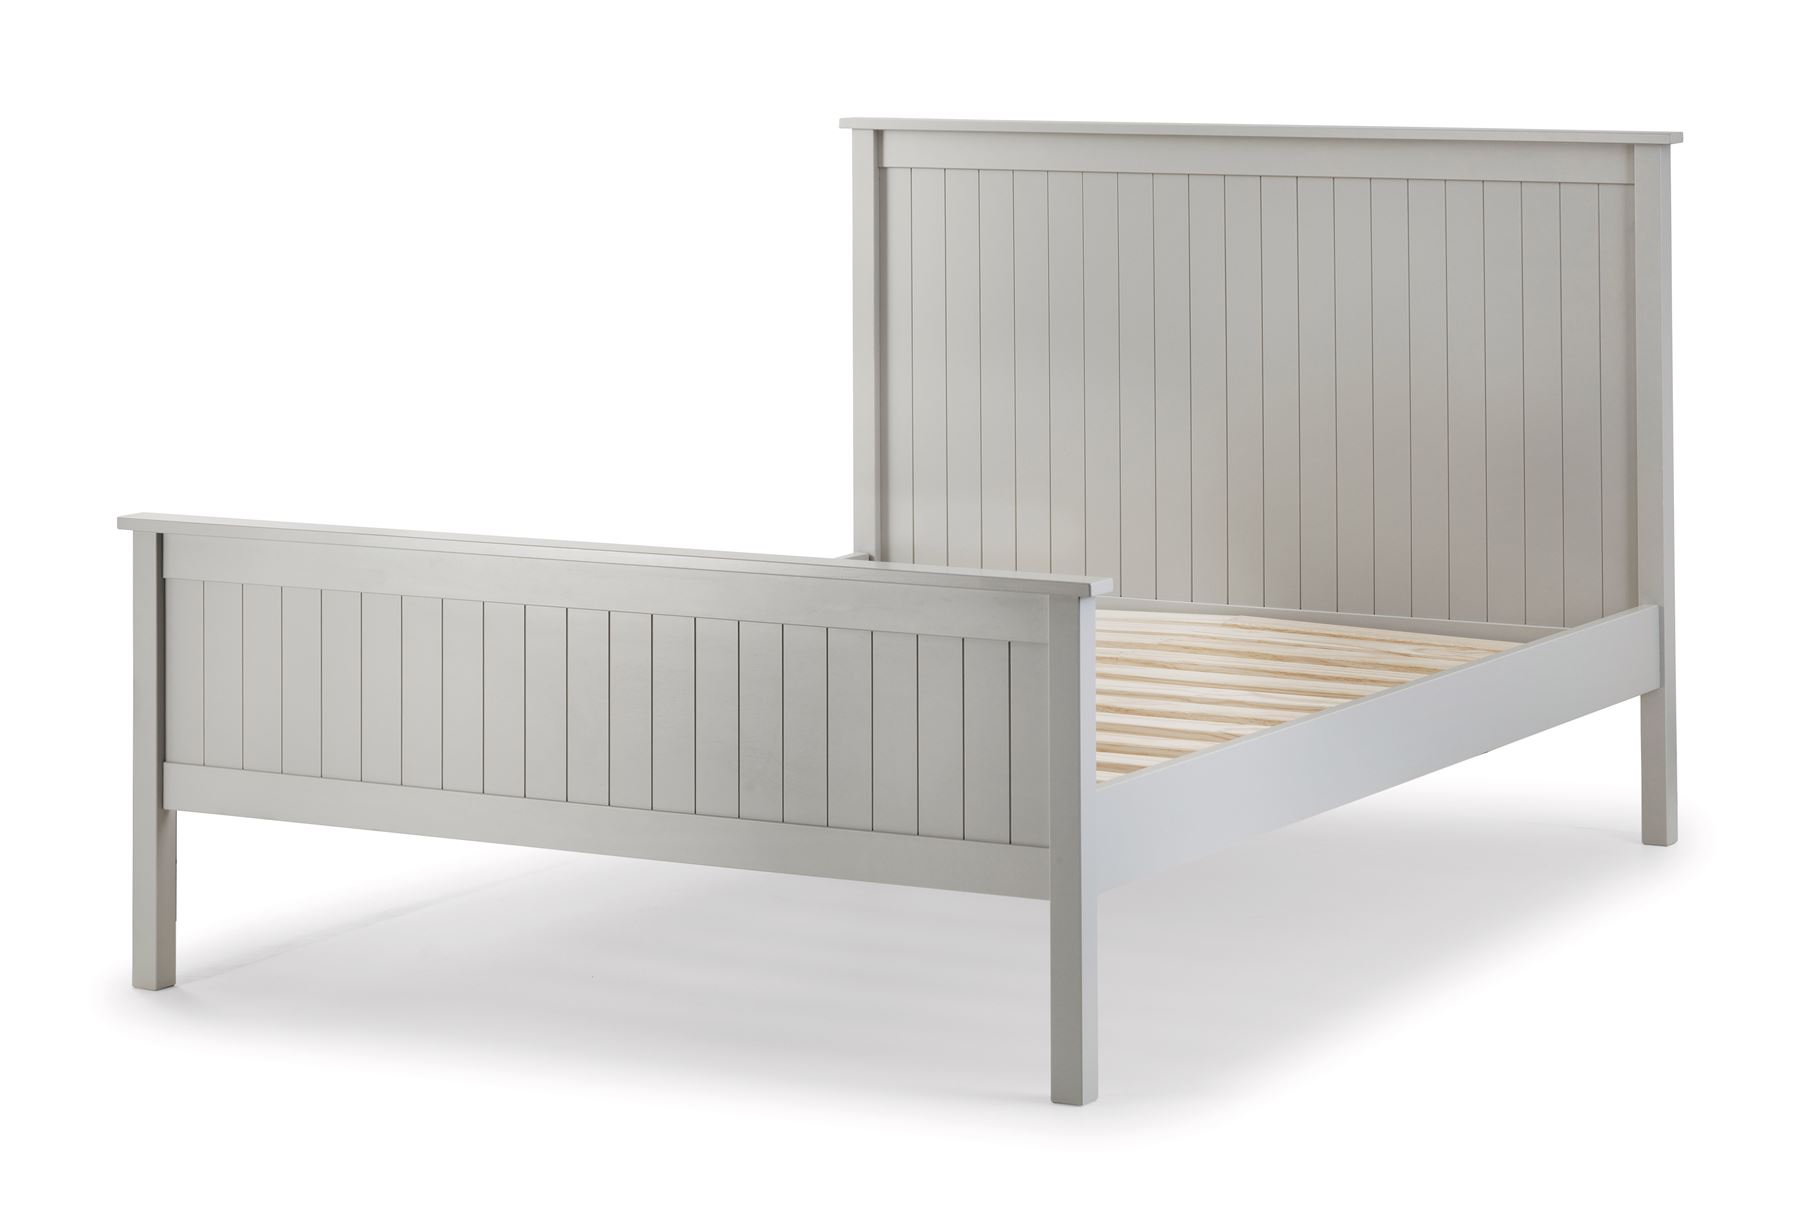 Julian Bowen Maine New England Shaker Style Grey Double Bed Frame 4FT6 135cm